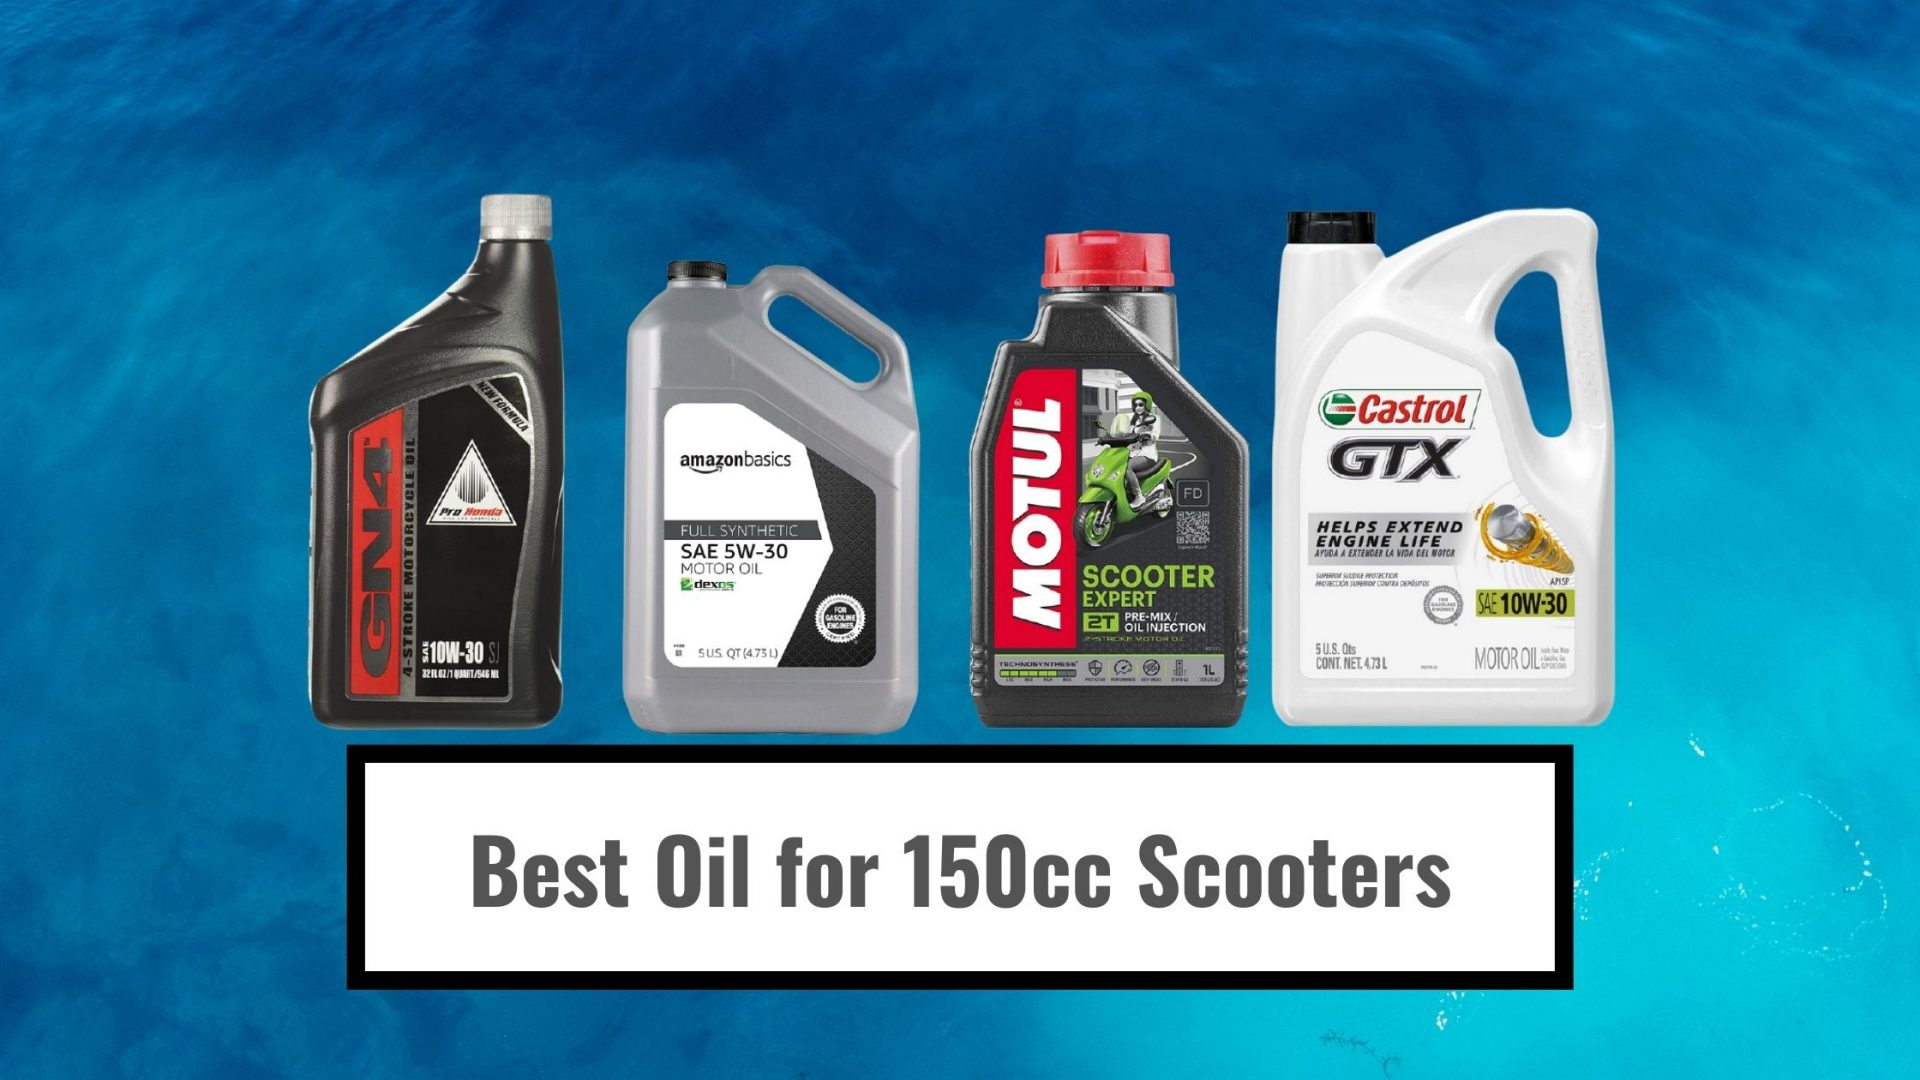 Best Oil for 150cc Scooters